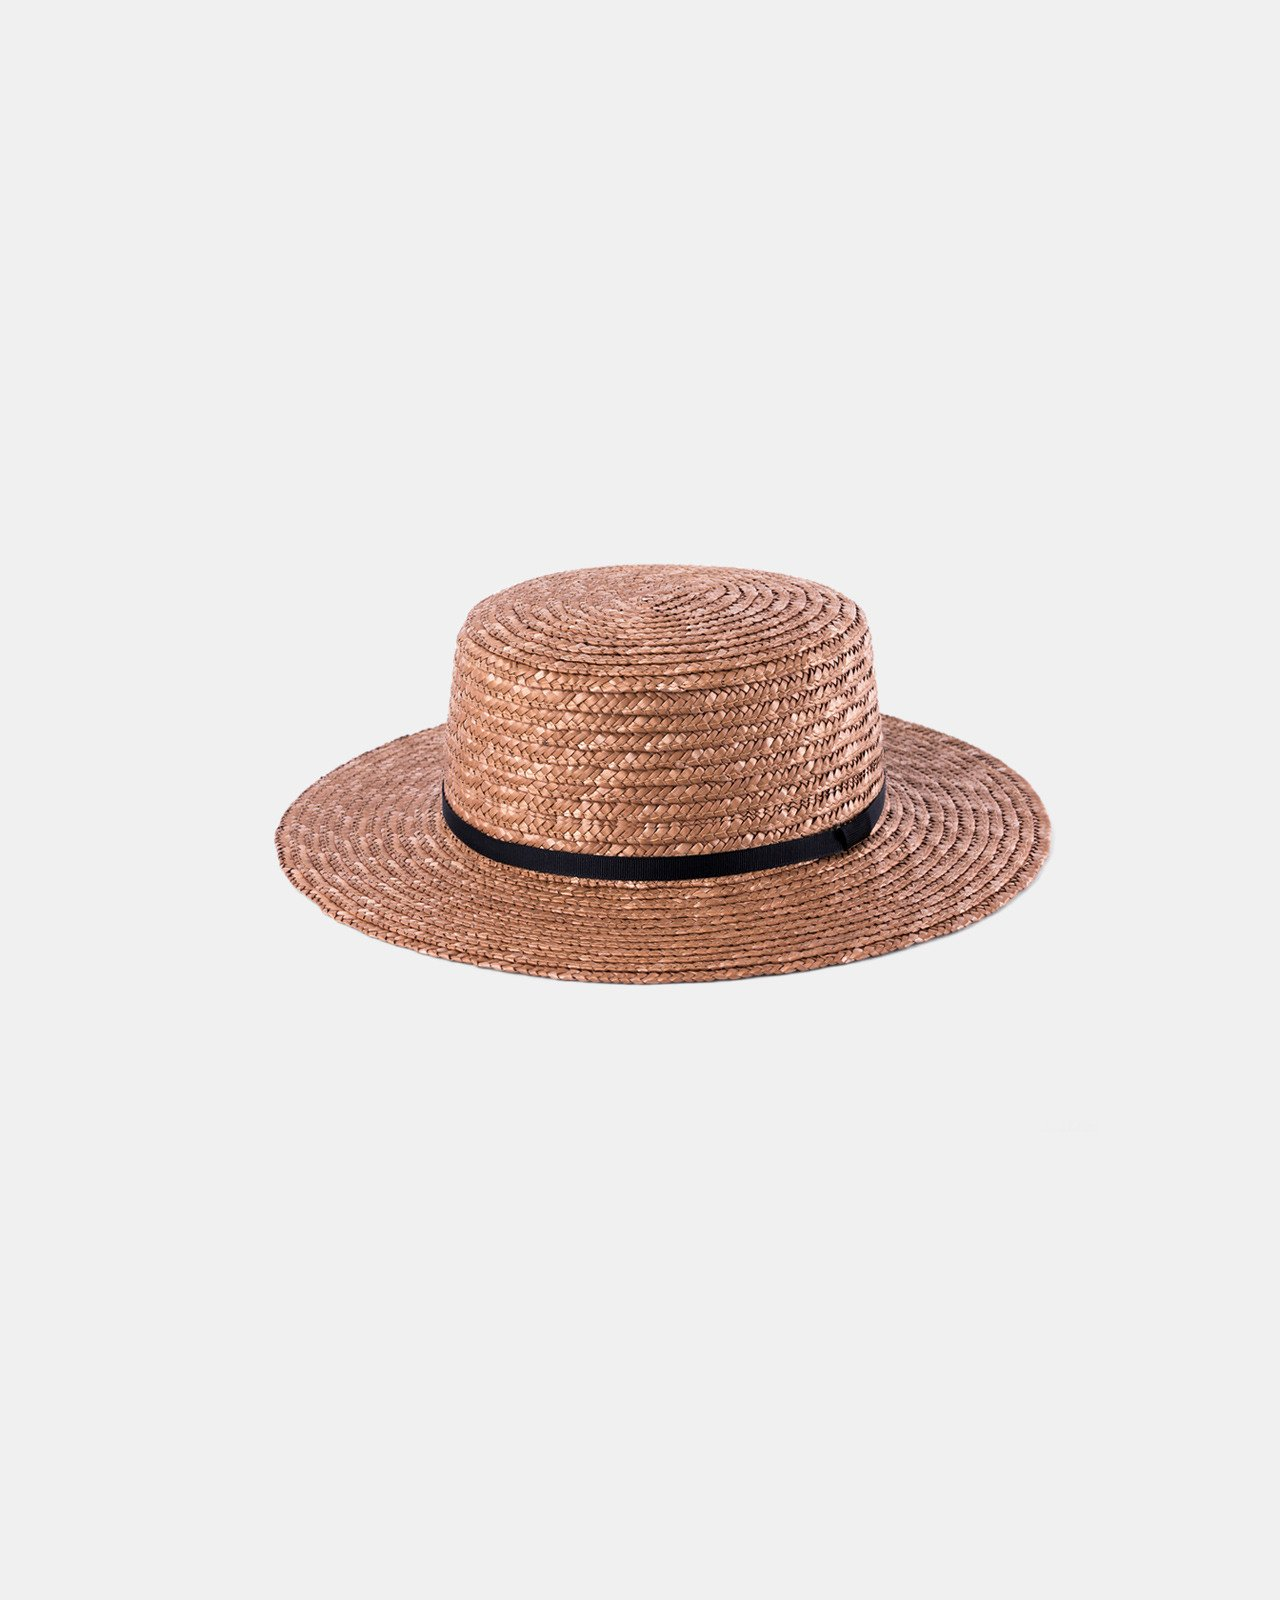 will-and-bear-harvey-amber-straw-hat-1.jpg